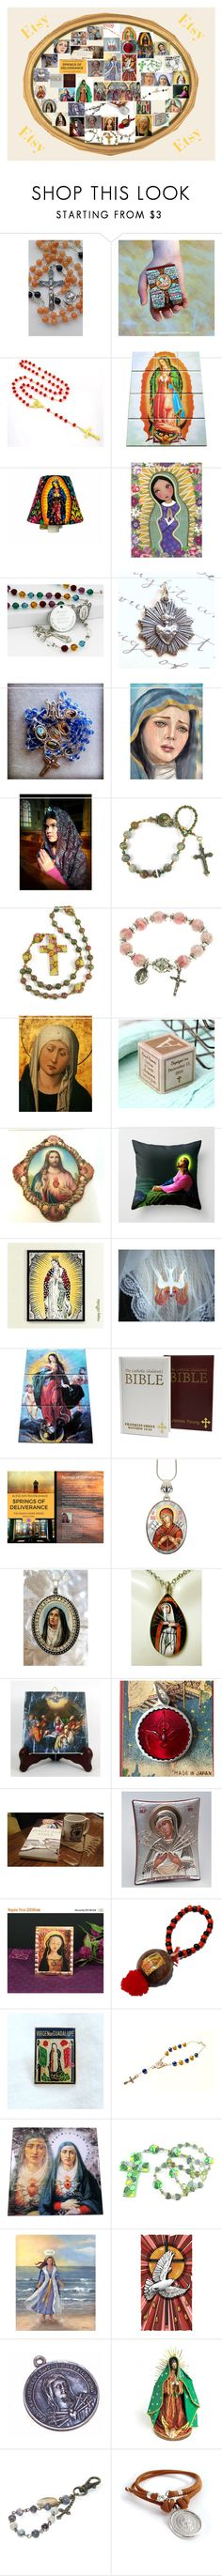 """Catholic Etsy"" by brianna-anzalone on Polyvore featuring interior, interiors, interior design, home, home decor, interior decorating and Religion Clothing"